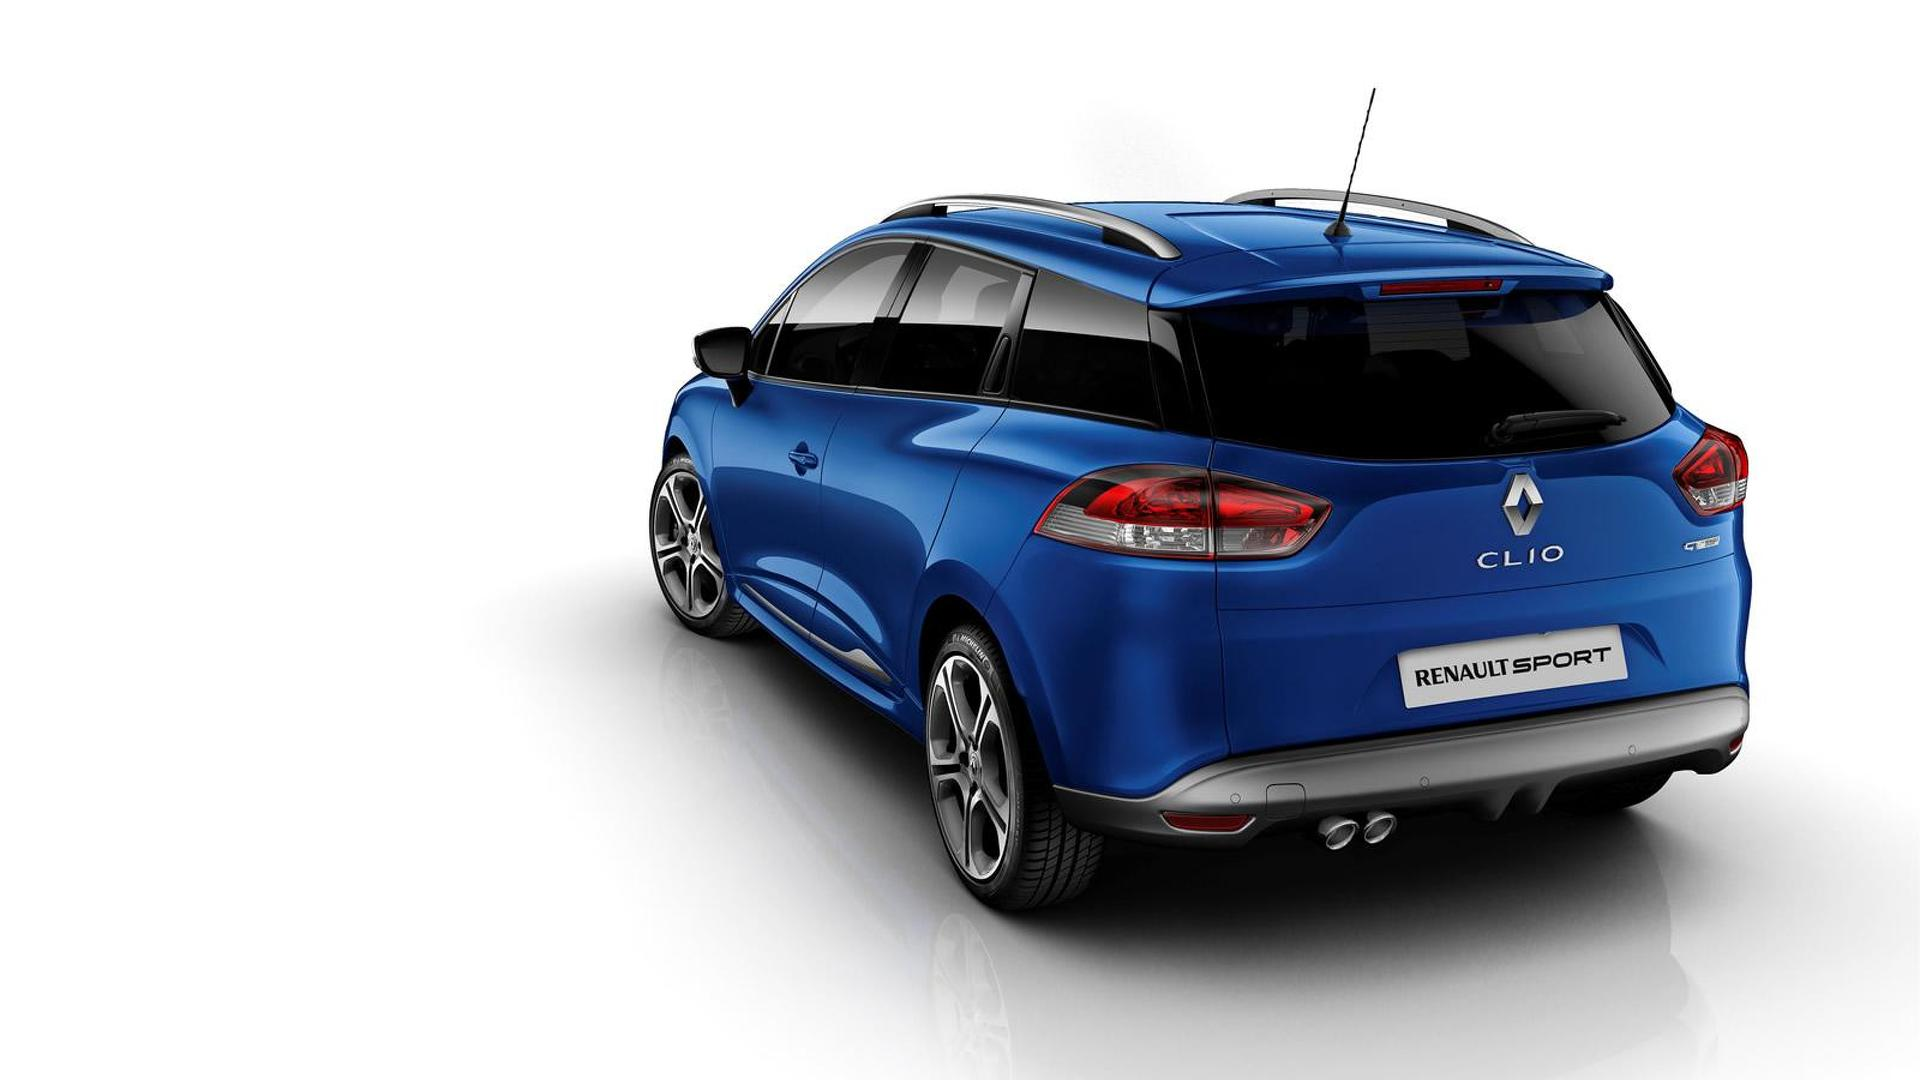 Renault Clio GT 120 EDC hatchback and estate officially revealed in Geneva [UPDATED]